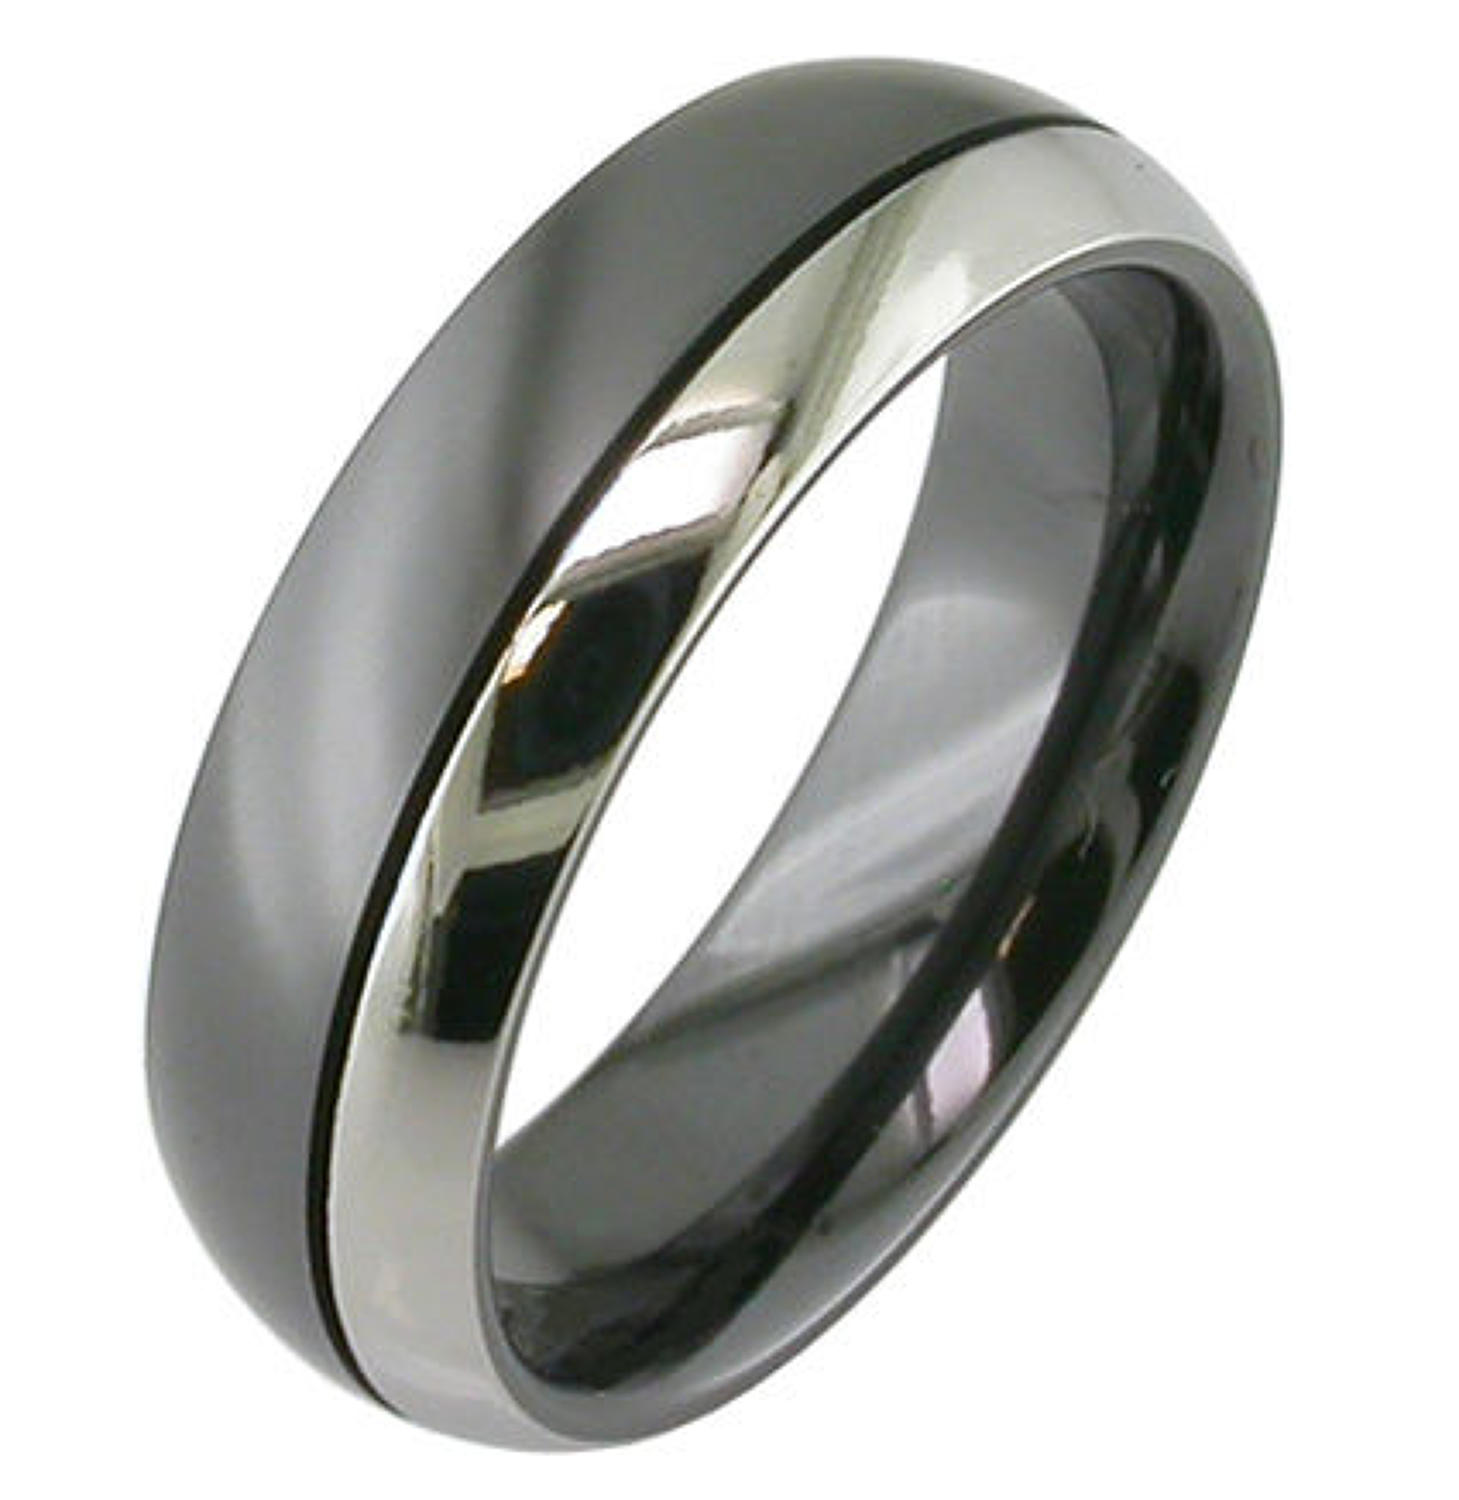 Dual Colour Zirconium Ring